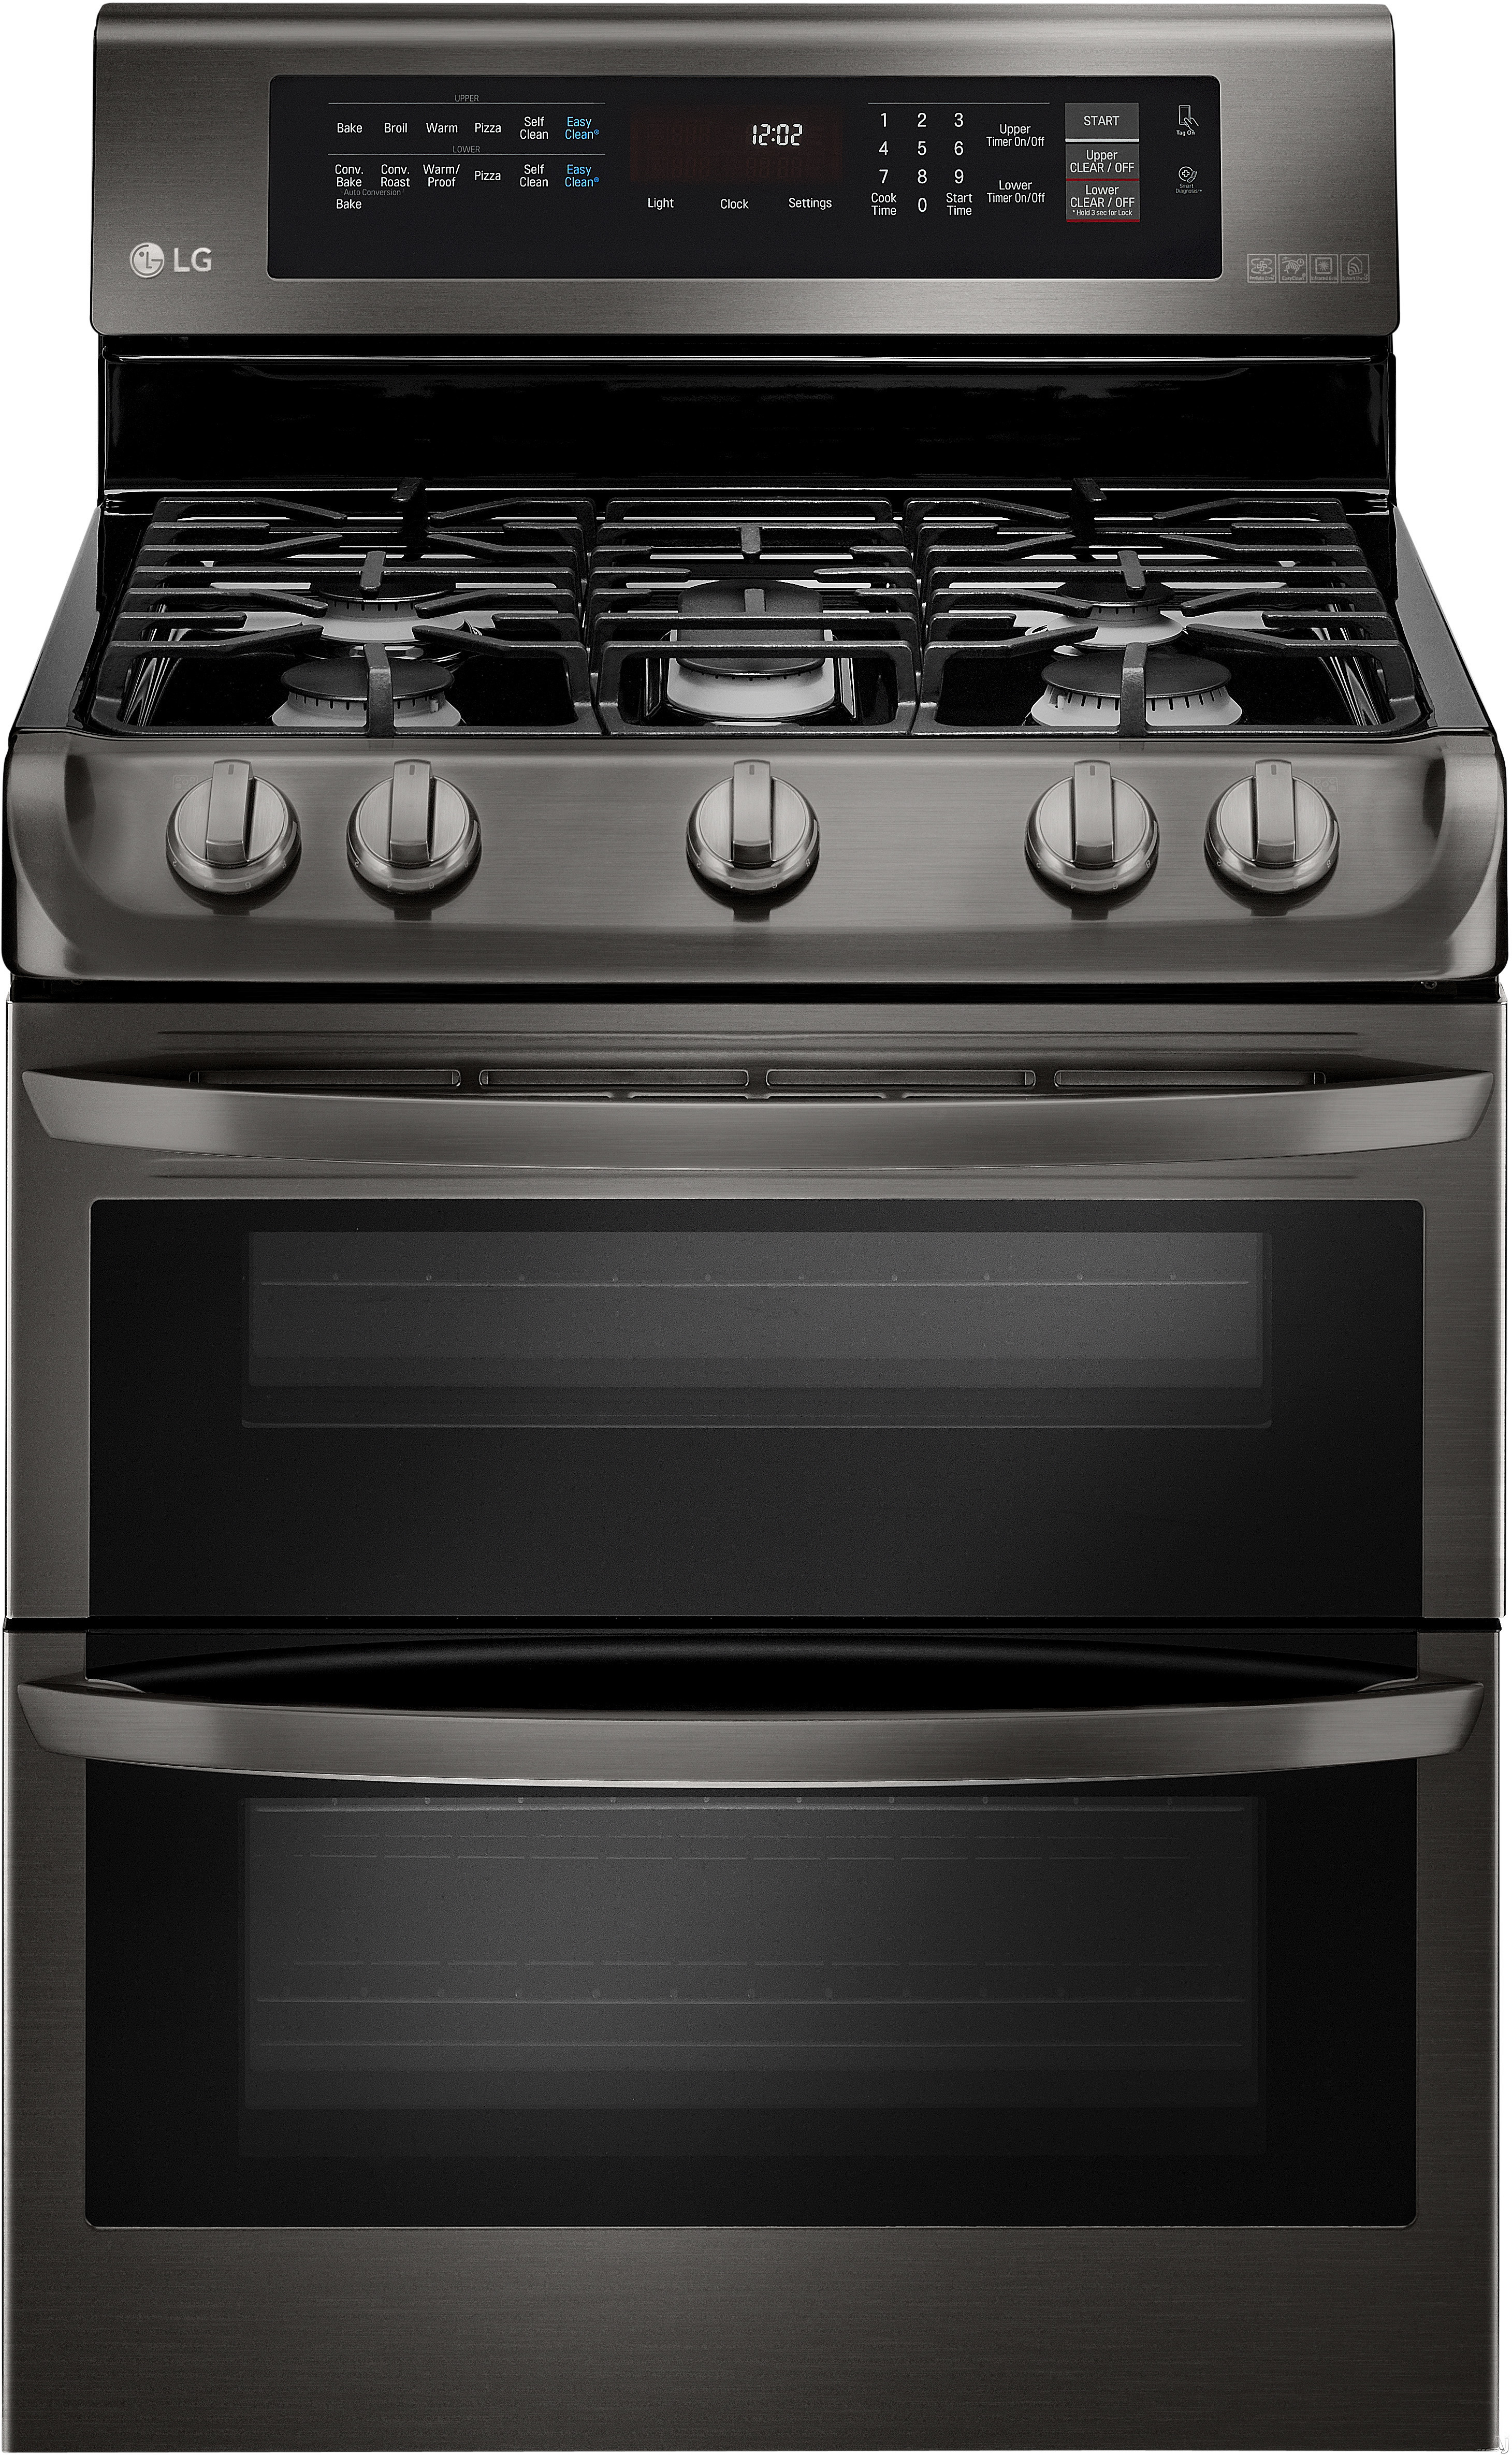 Side by side double oven cost - Side By Side Double Oven Cost 16